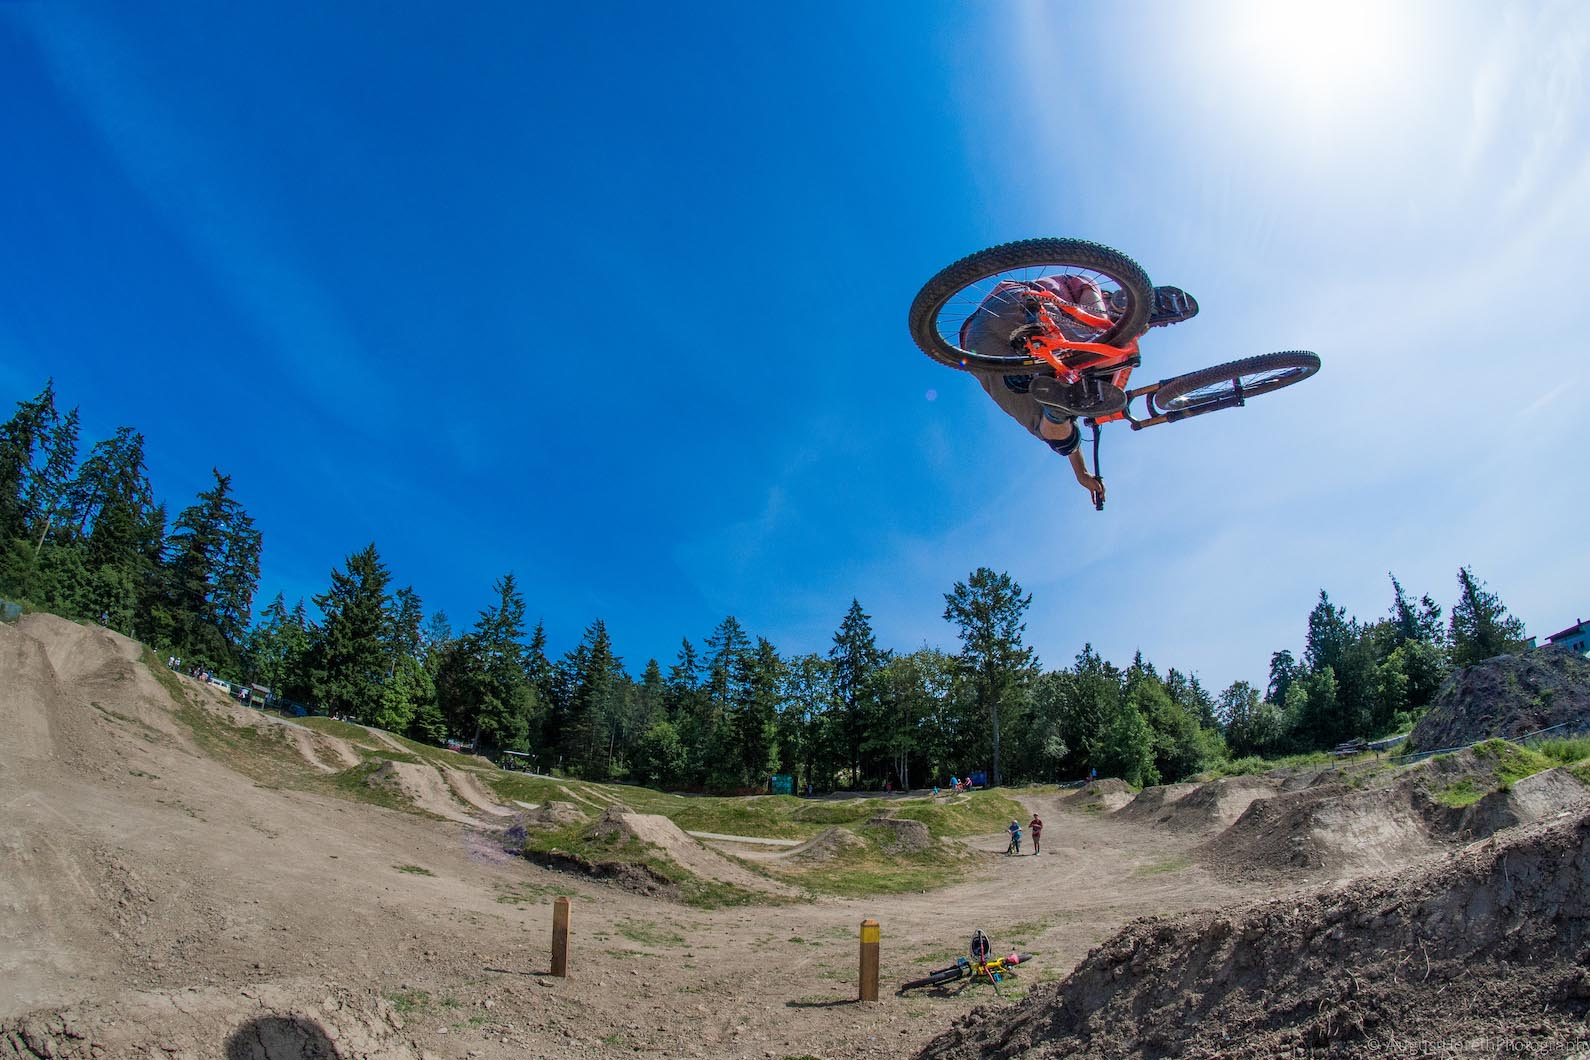 North Saanich Freeride Park